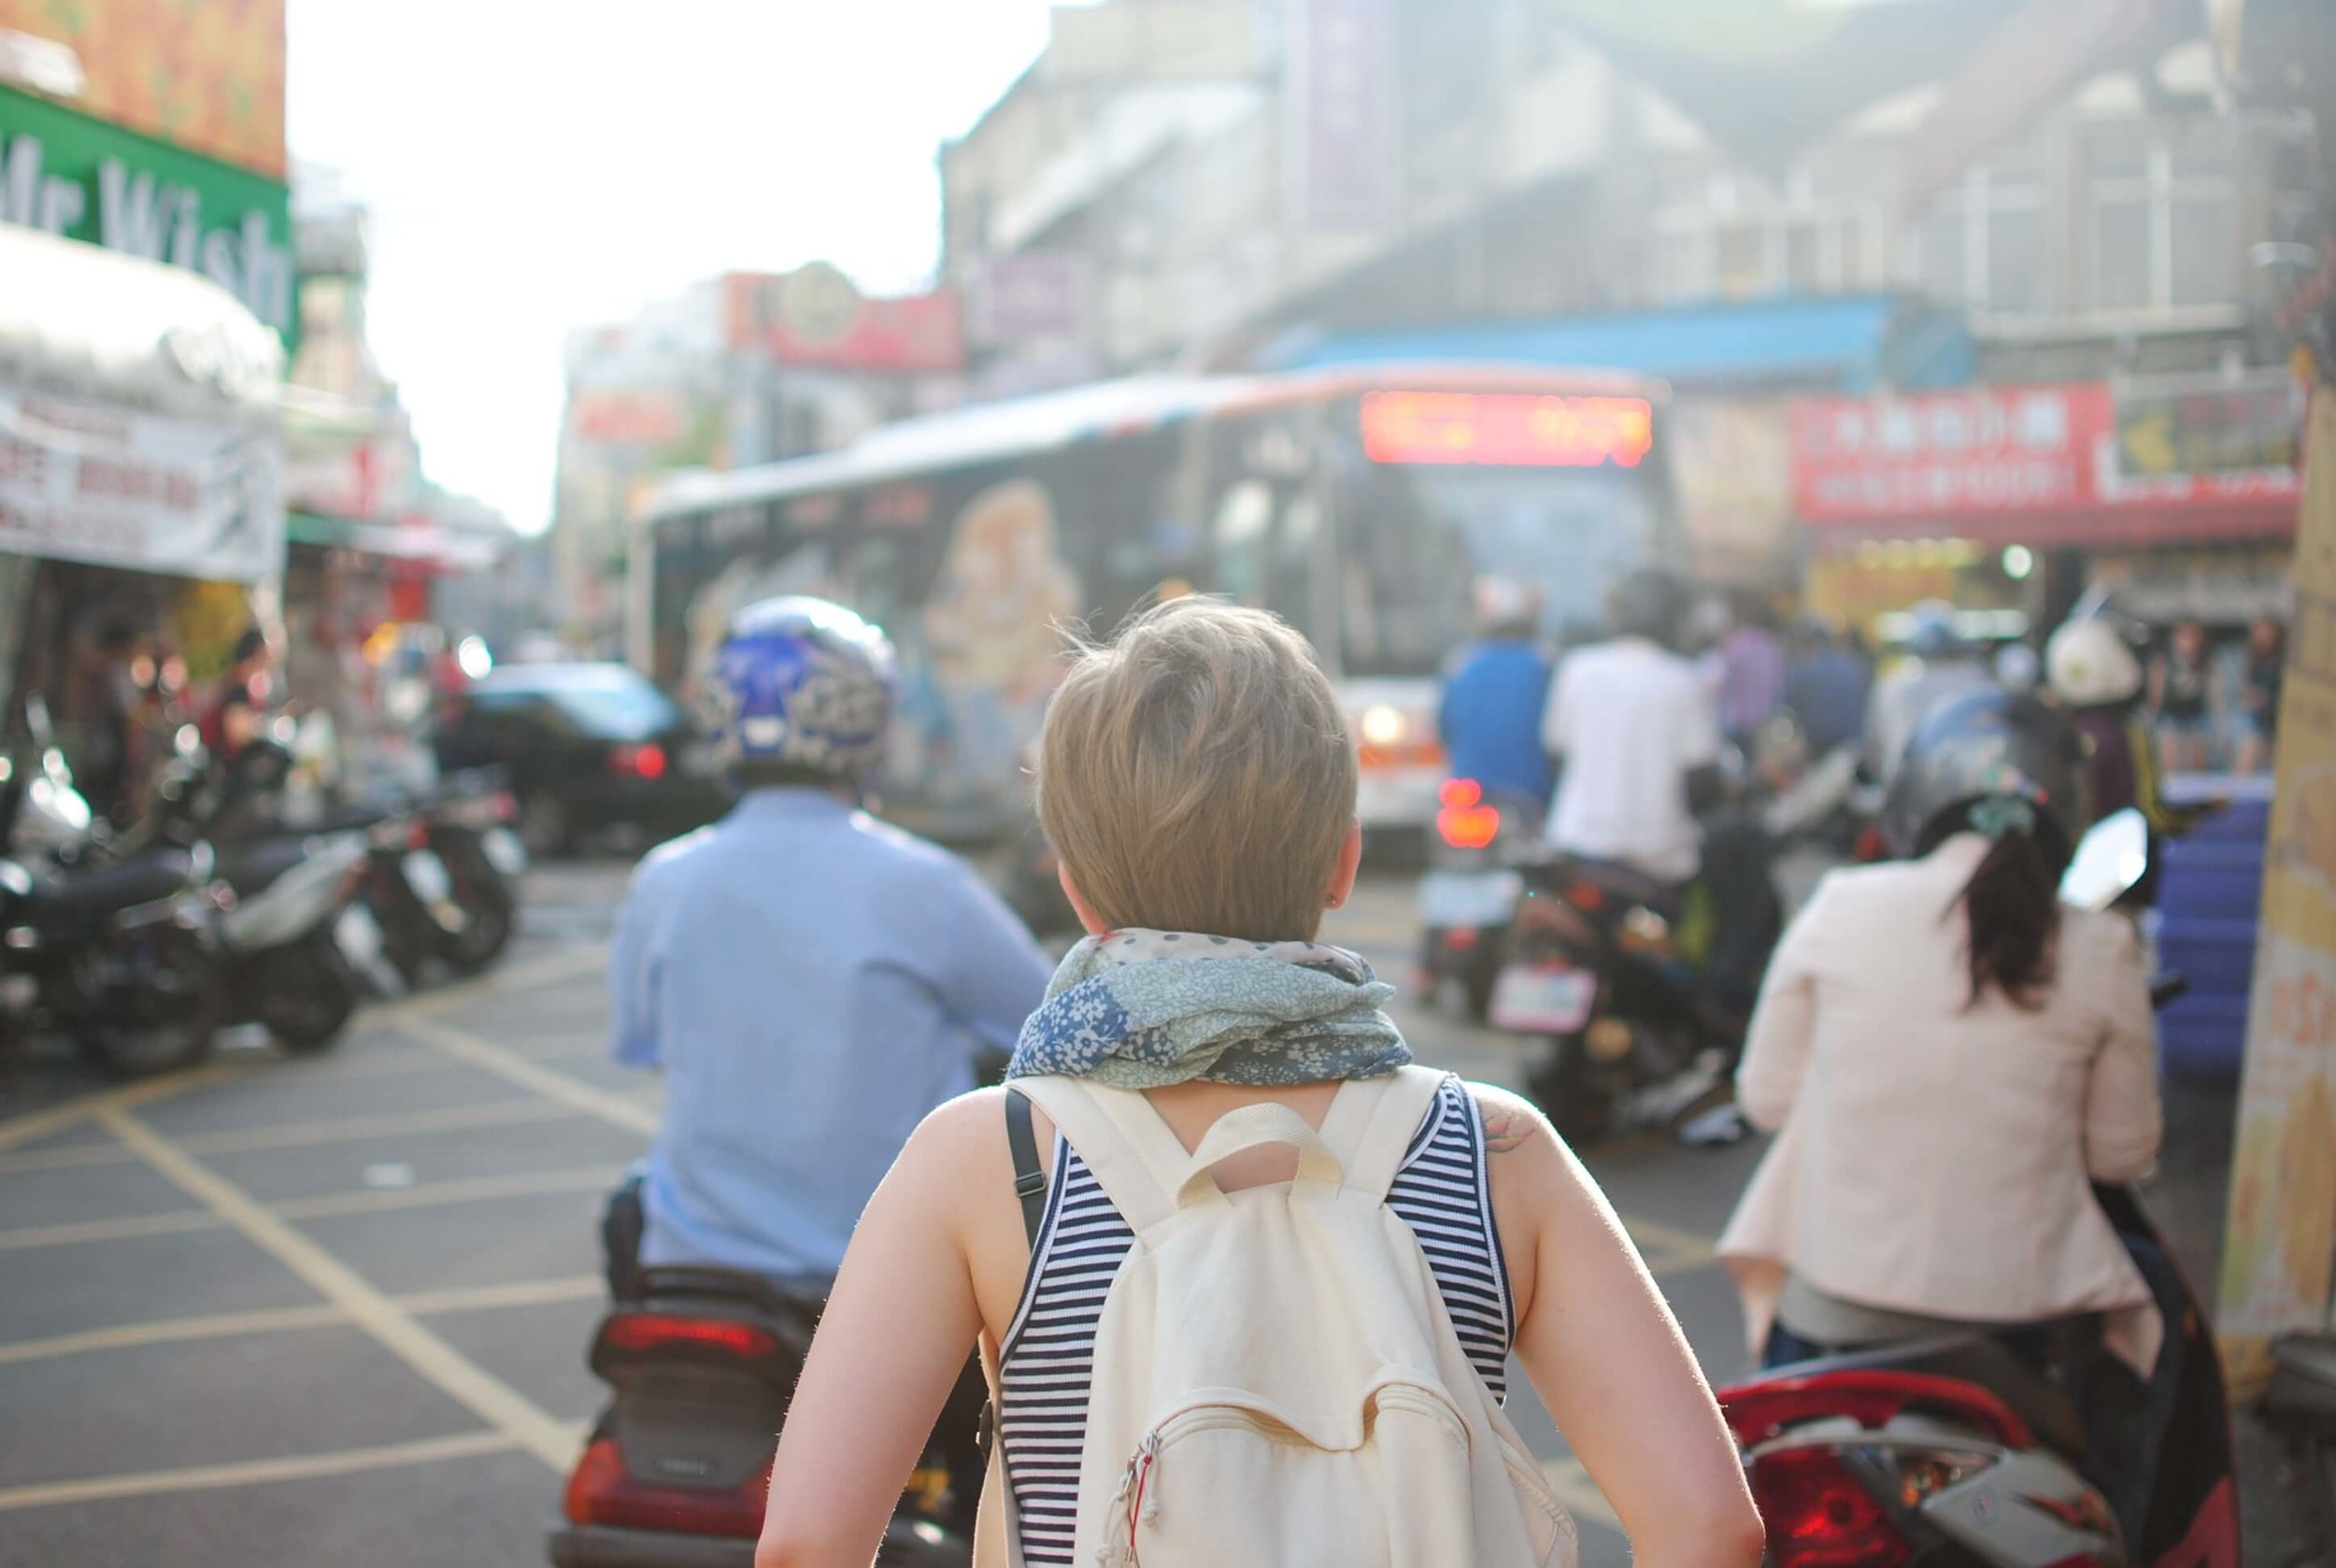 Female backpacker walking through streets in Vietnam